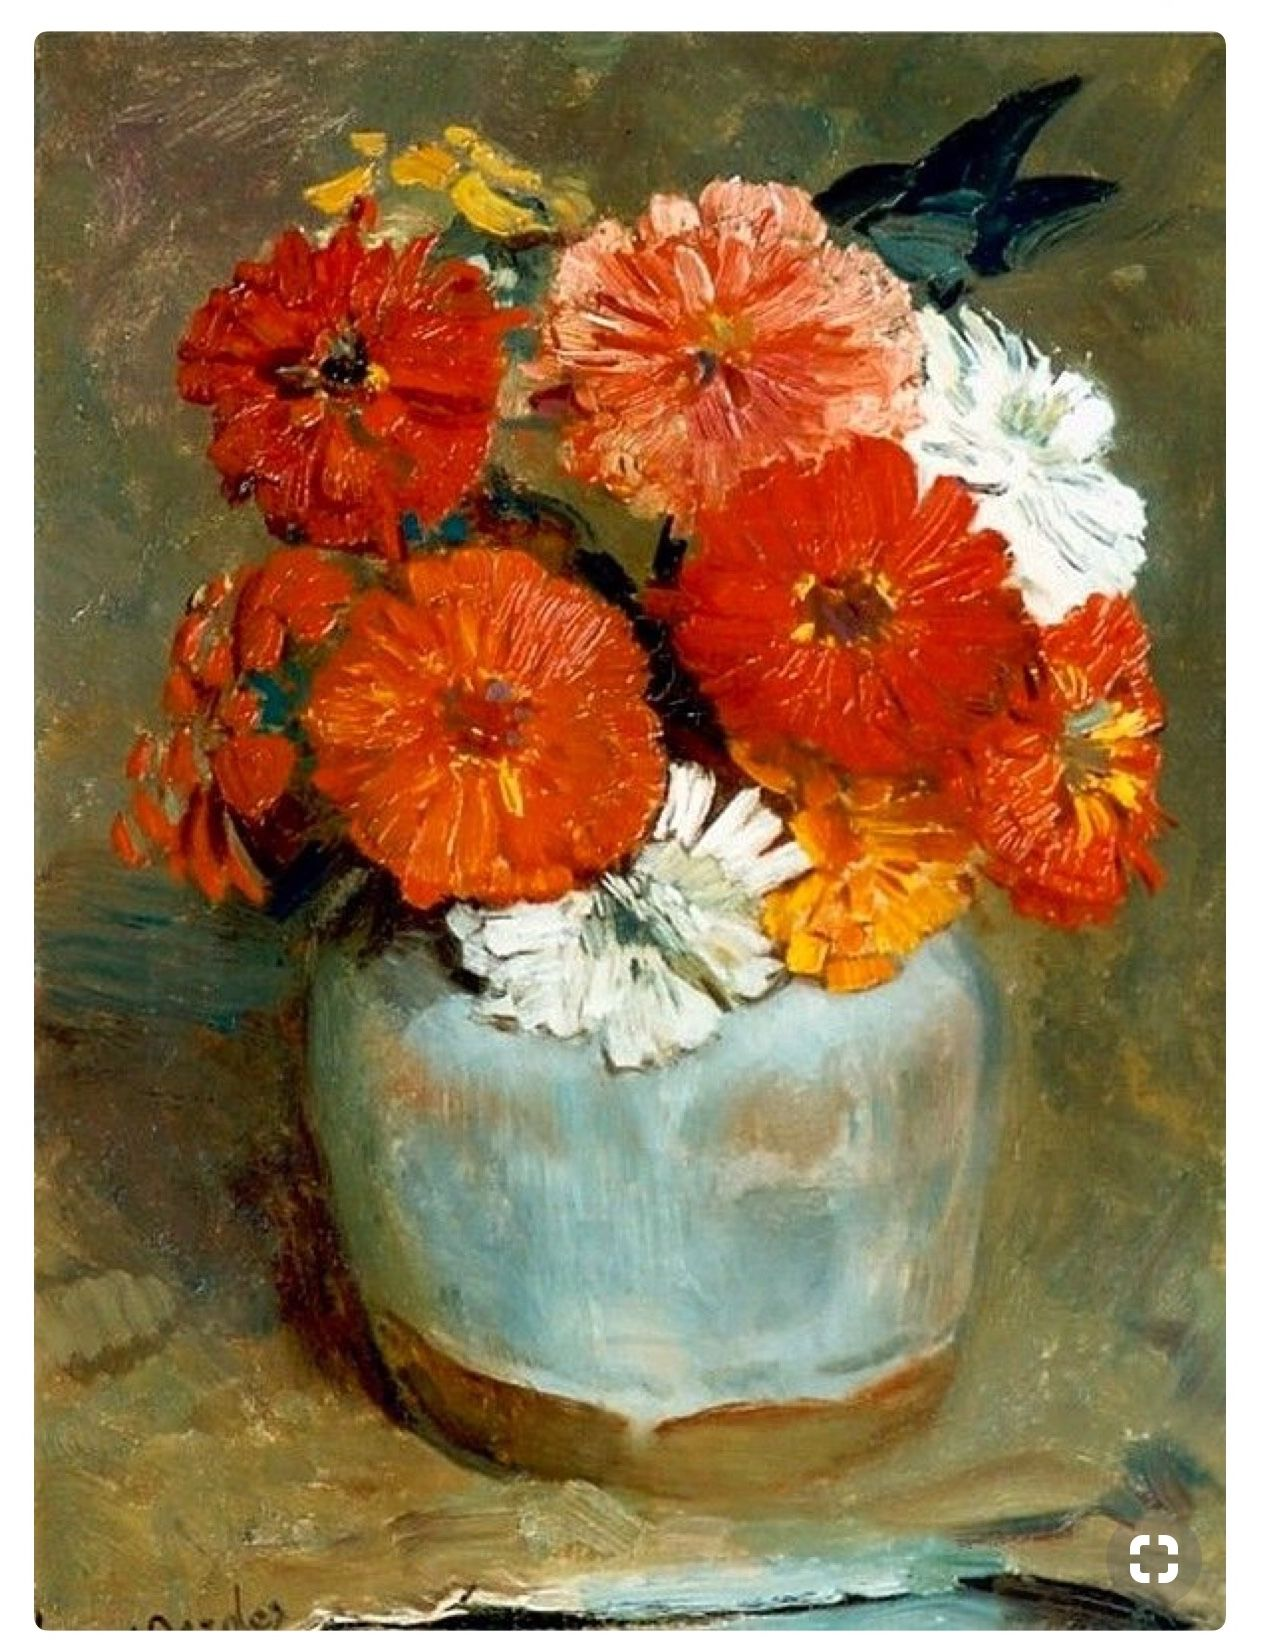 Pin by corne c on art flowers pinterest art flowers and paintings blooming brushwork garden and still life flower paintings frans david oerder dutch floral still life izmirmasajfo